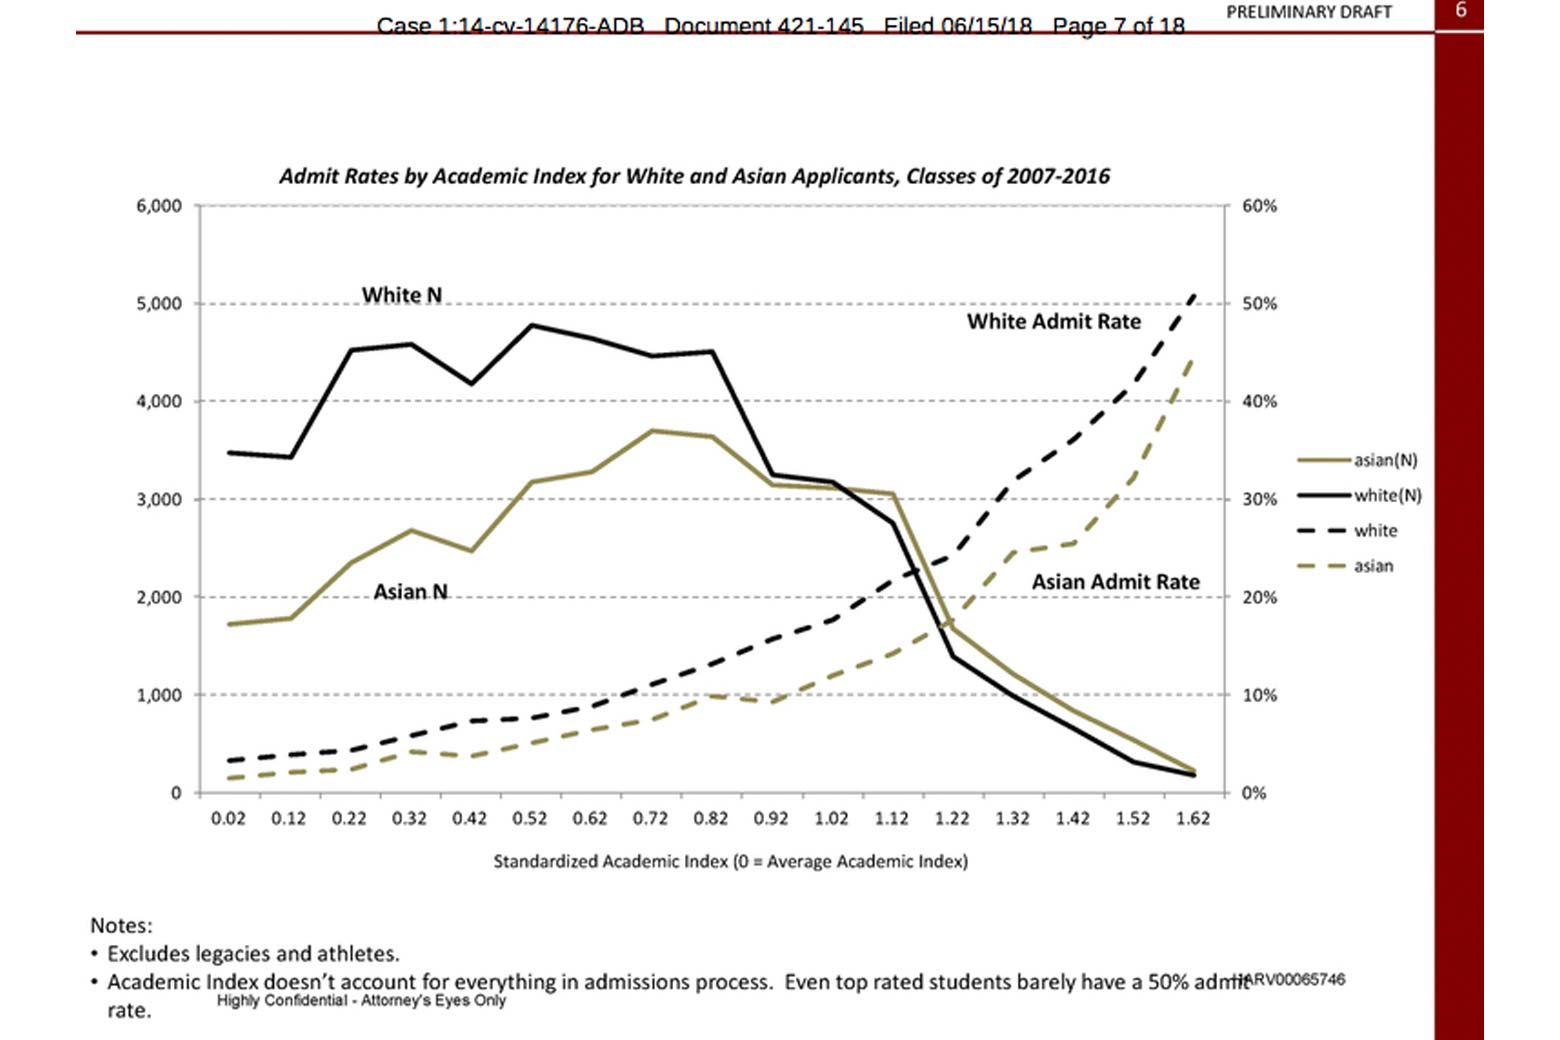 Admit rates by academic index for White and Asian applicants, classes of 2007–2016